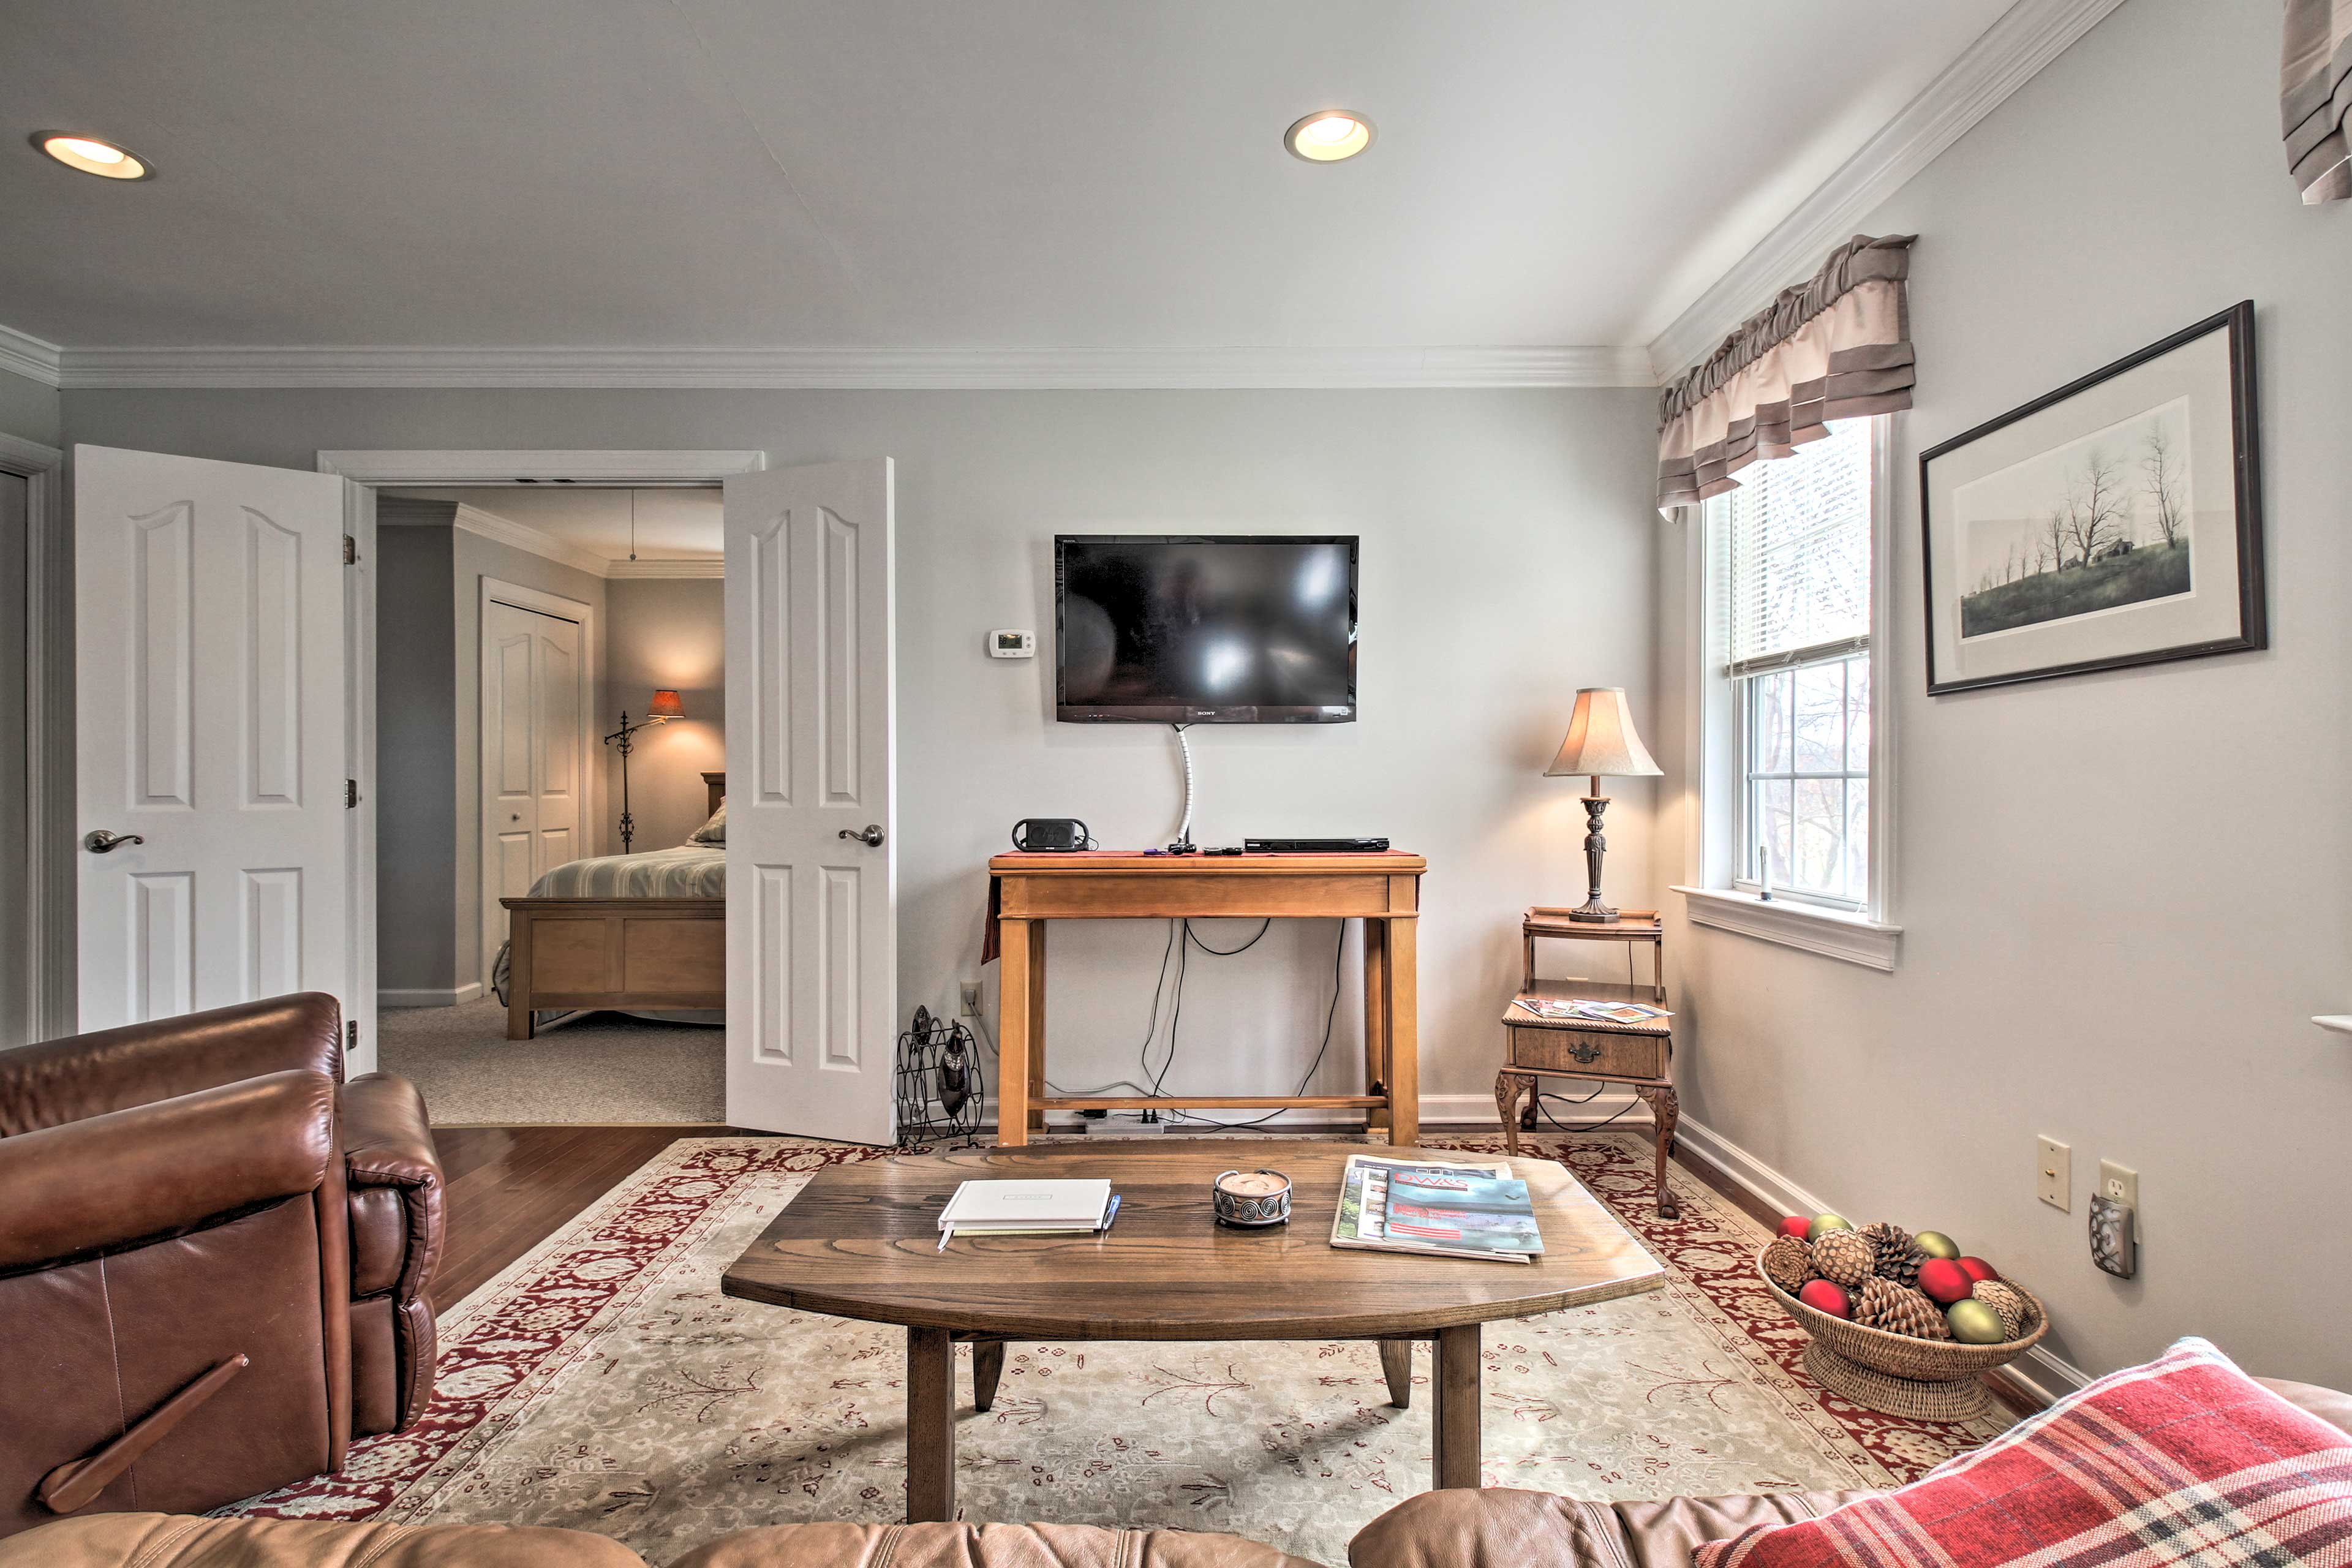 Settle into the comfortable furnishings across from the flat-screen cable TV.